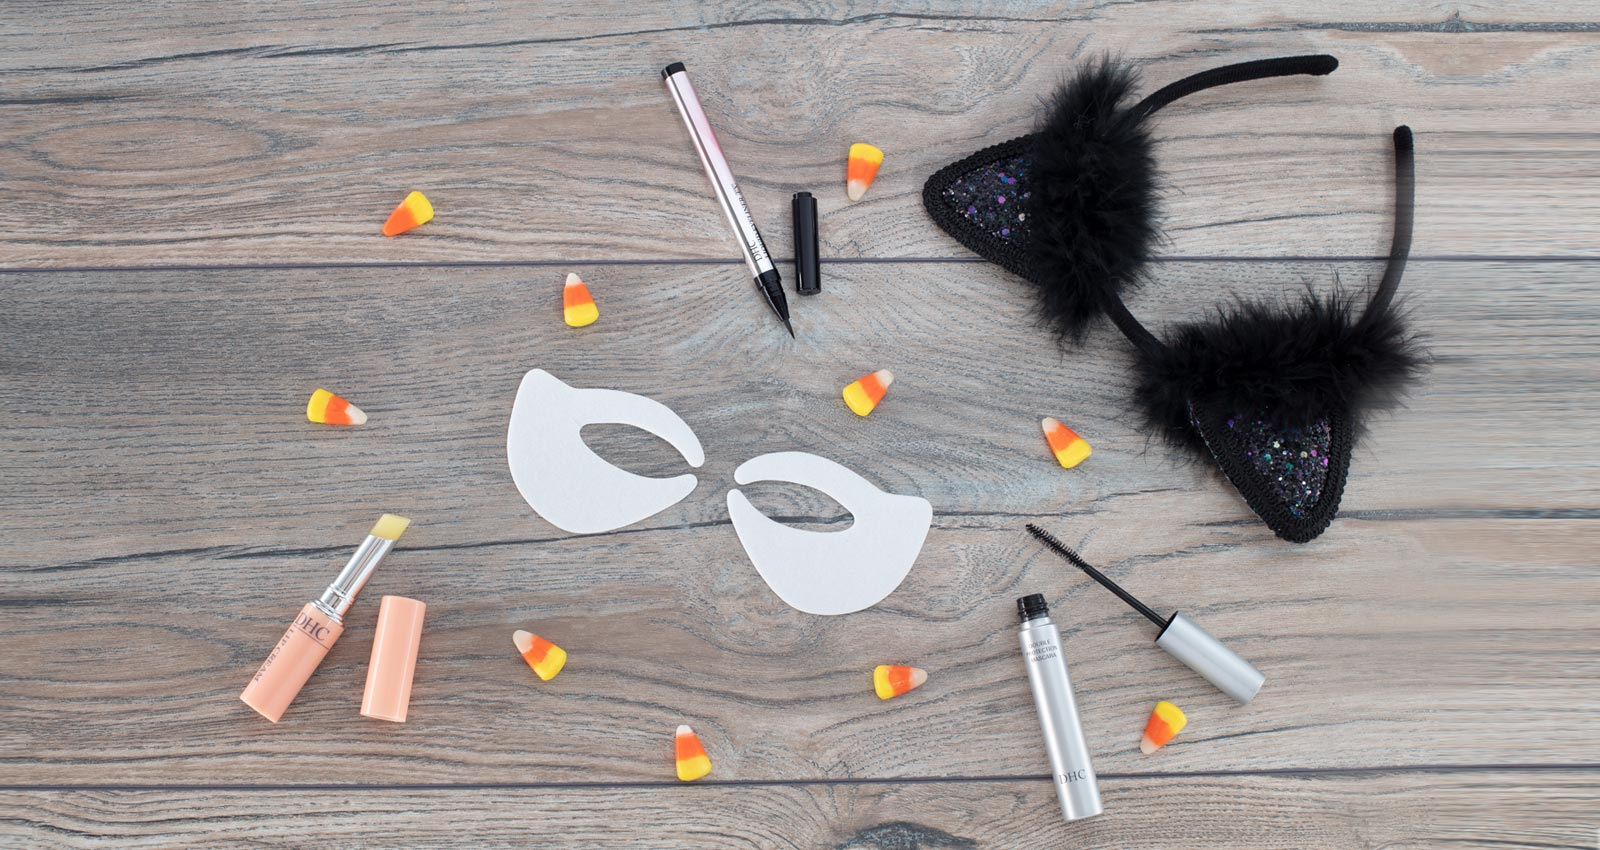 Our in-house beauty experts share last-minute, simple DIY Halloween looks you can create with the makeup you may already have on hand.